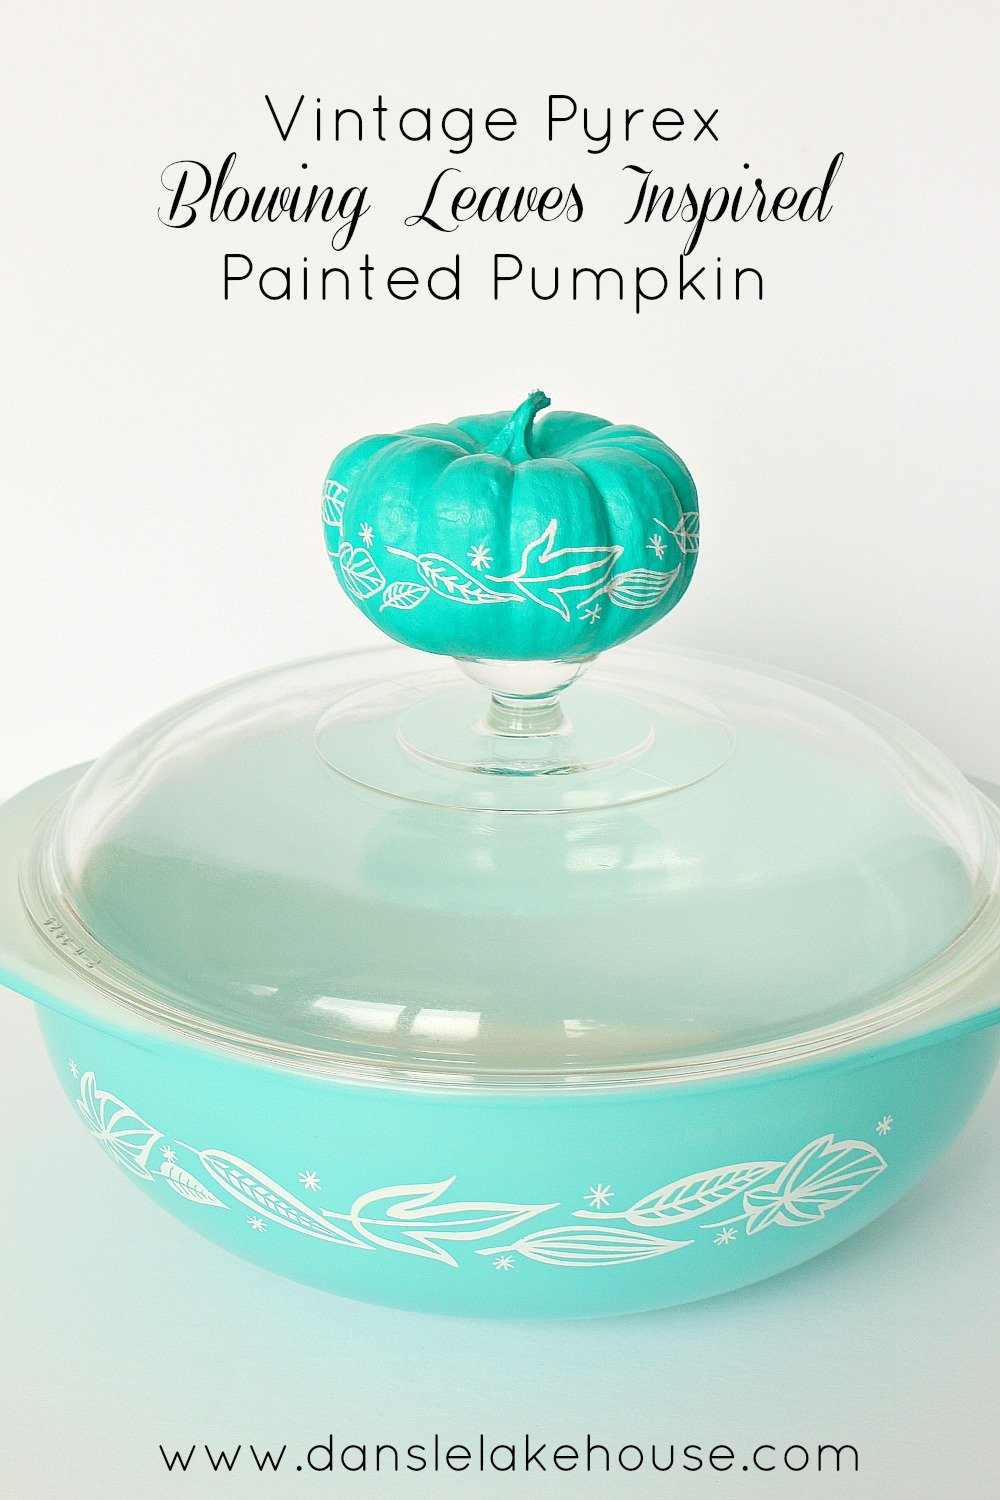 Vintage Pyrex Blowing Leaves Painted Pumpkin - Dans le Lakehouse